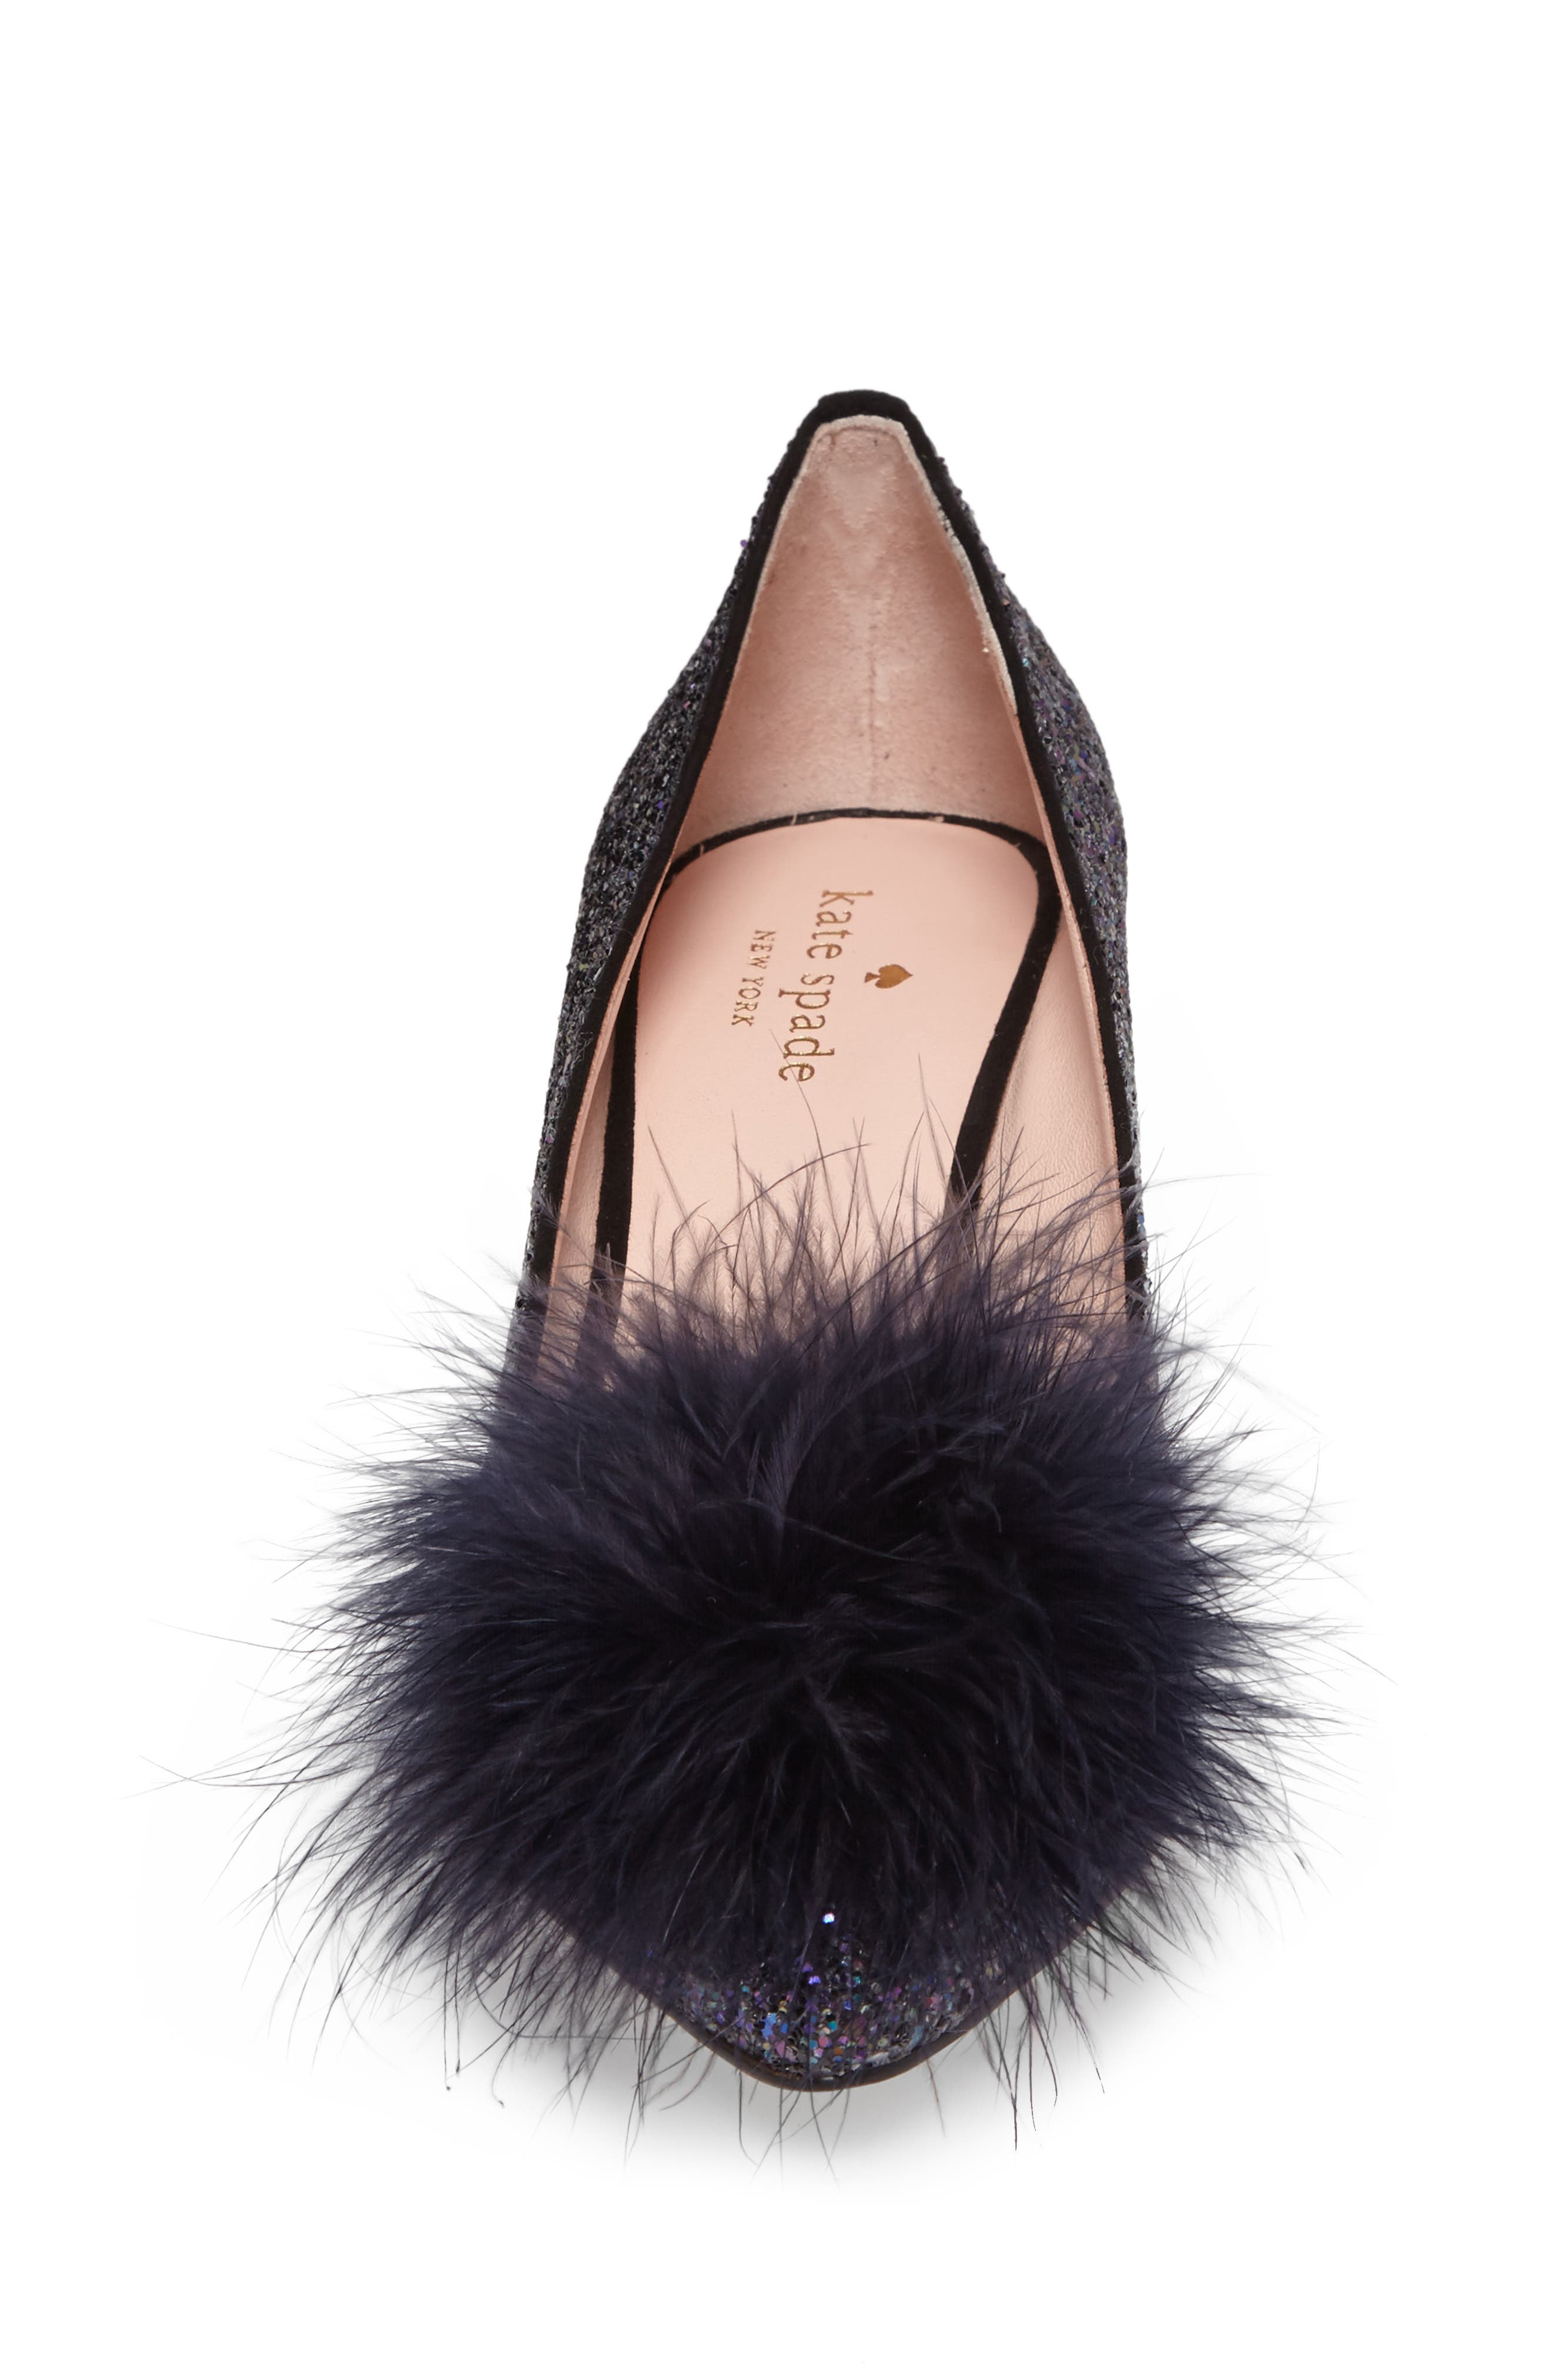 maribou pouf glitter pump,                             Alternate thumbnail 4, color,                             Midnight